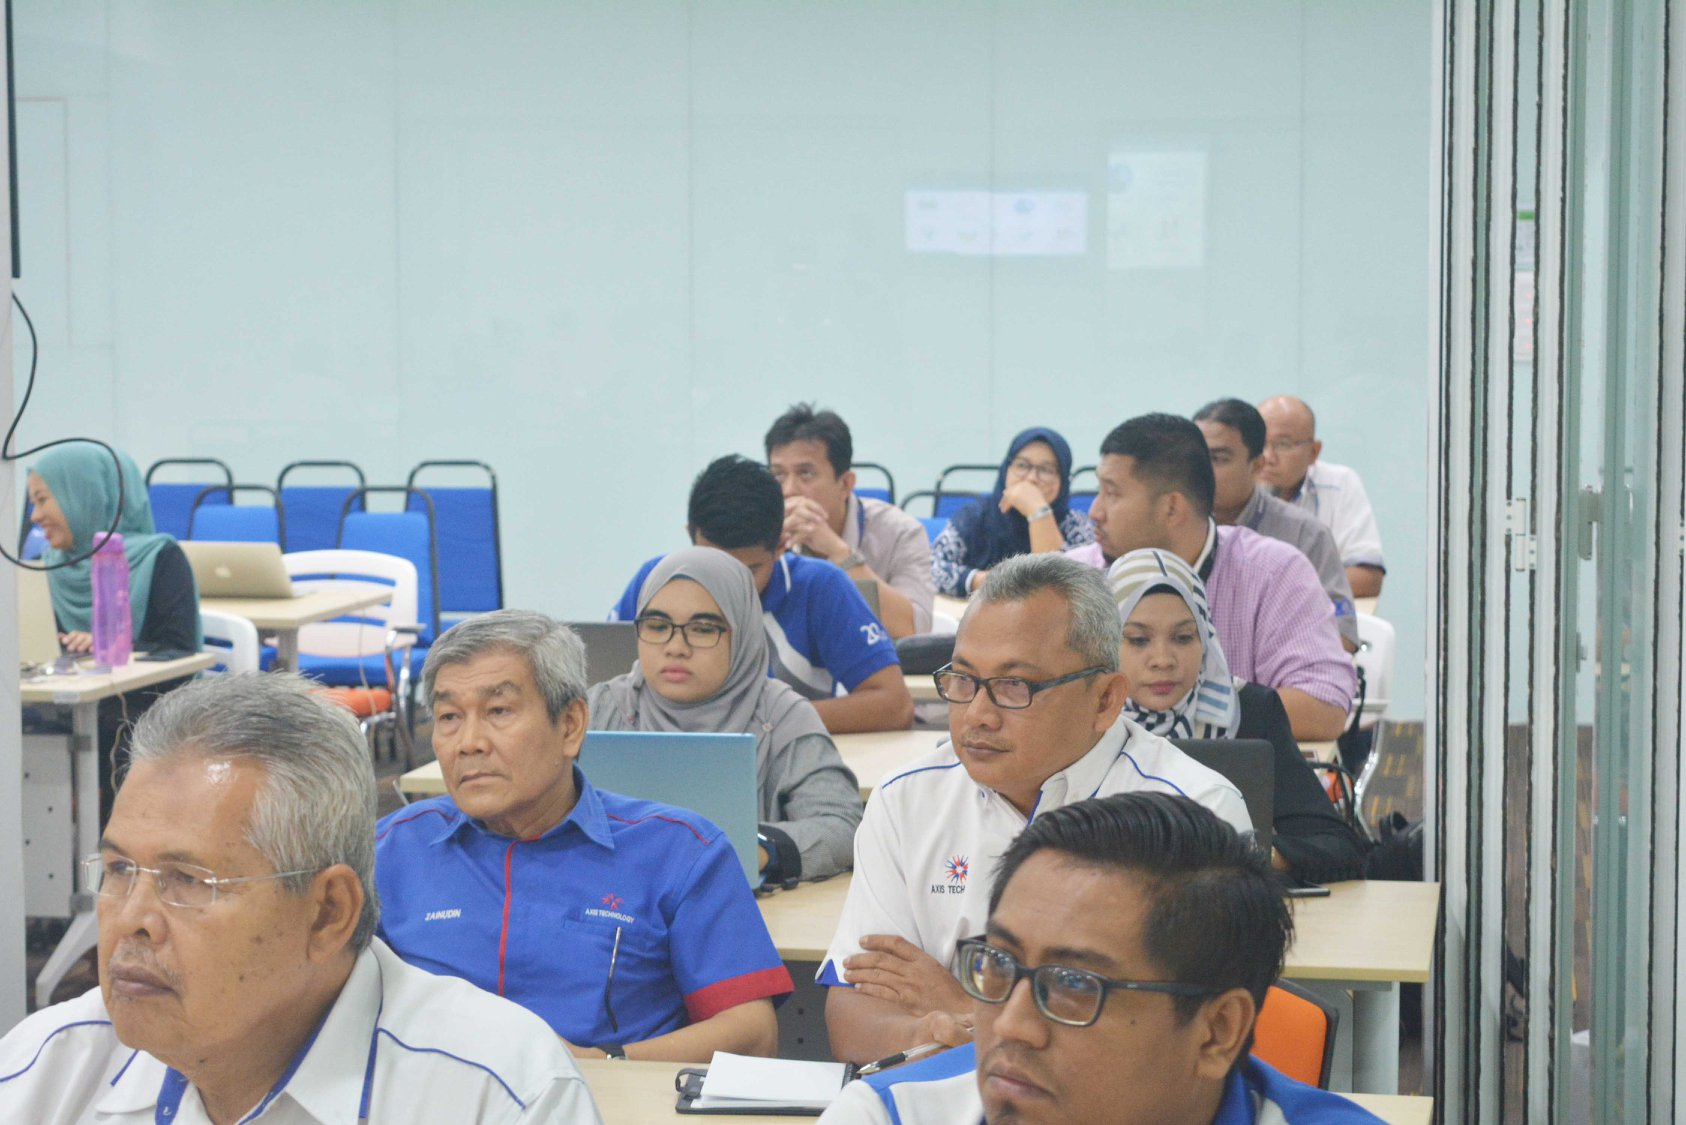 2020: Mutiara Teknologi solution Day 1.0